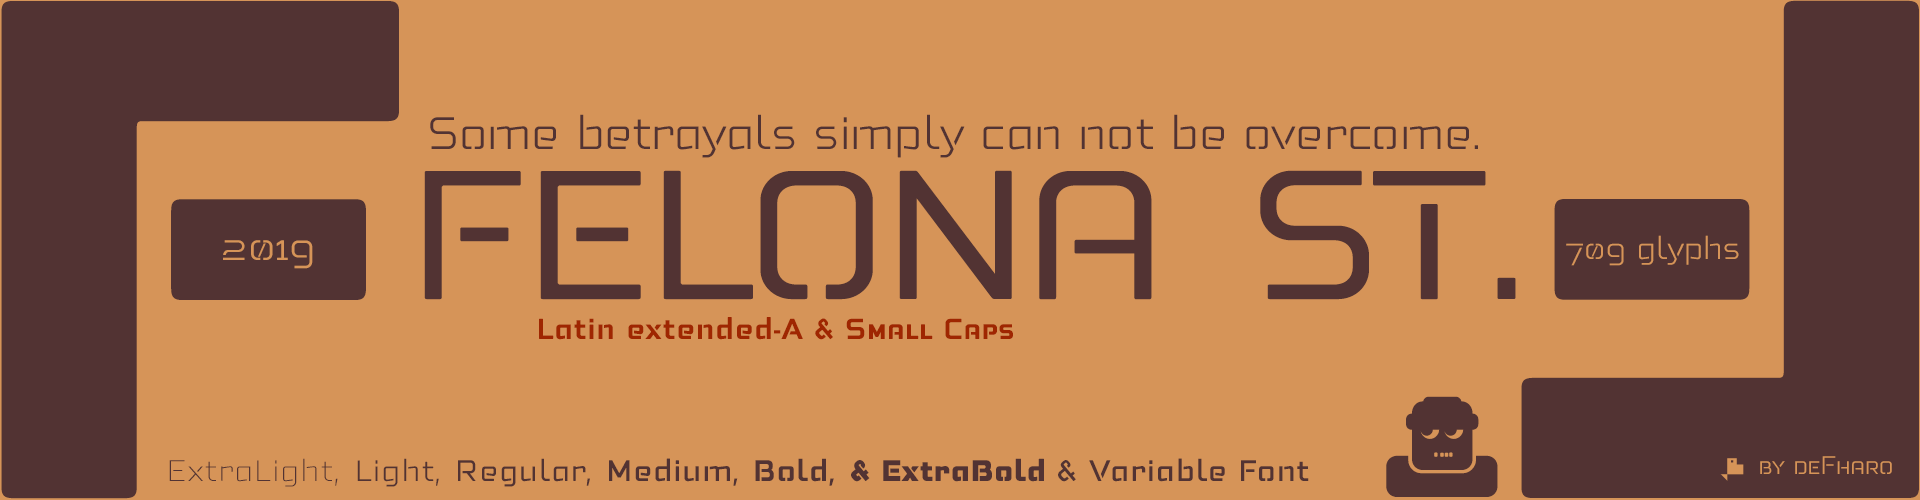 Felona st. 6 fonts neo-stencil. Some betrayals simply can not be overcome.